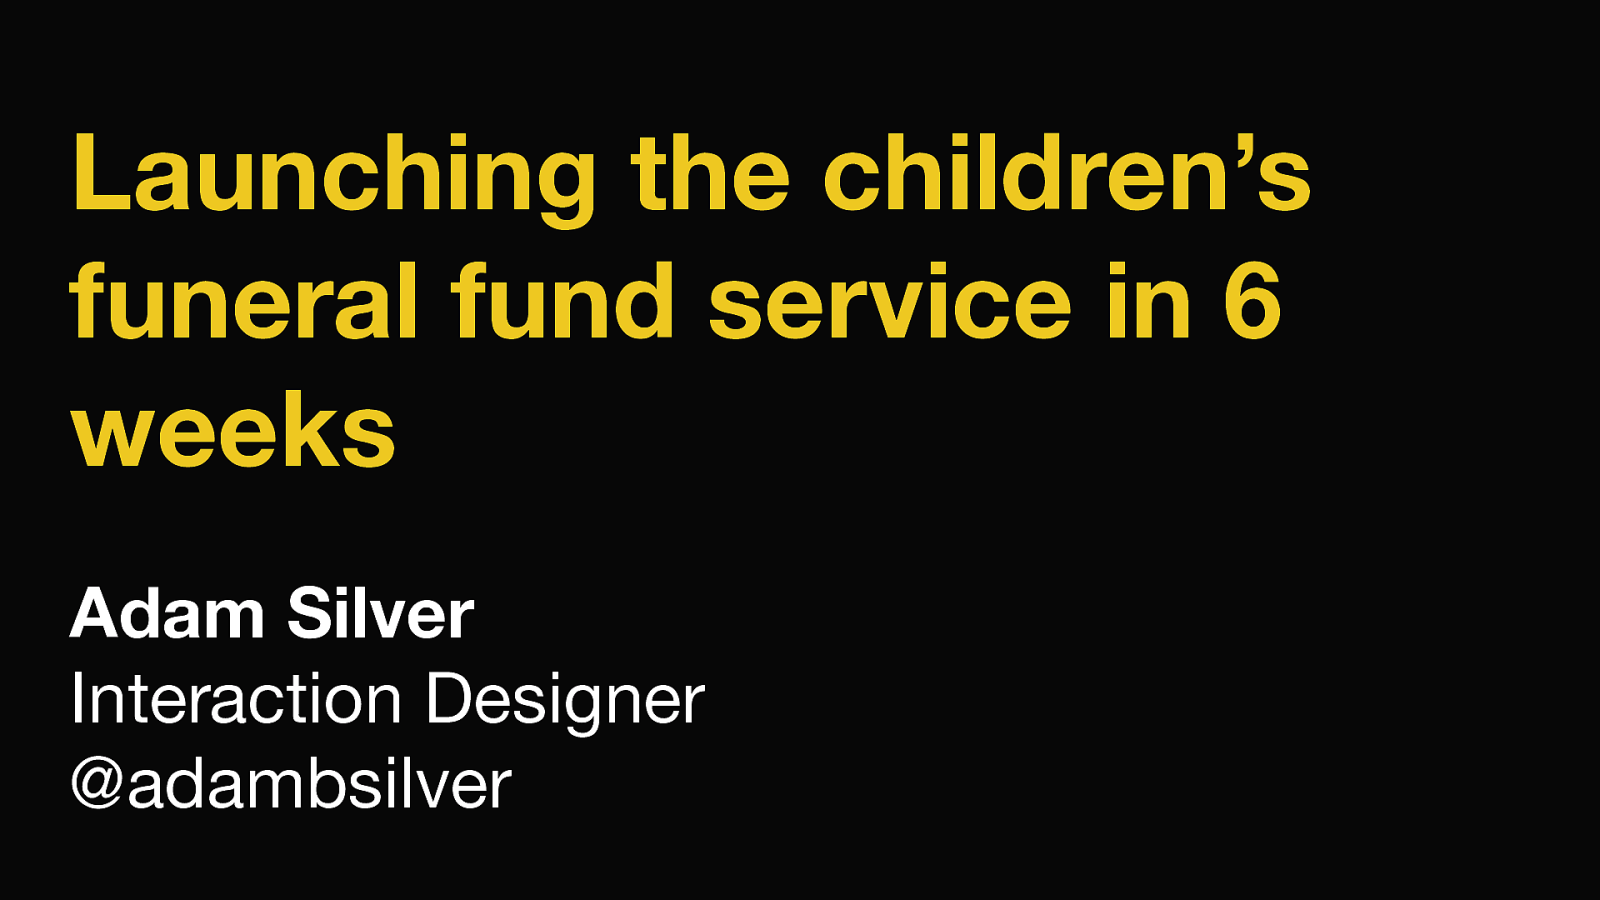 Launching the Children's Funeral Fund service in 6 weeks